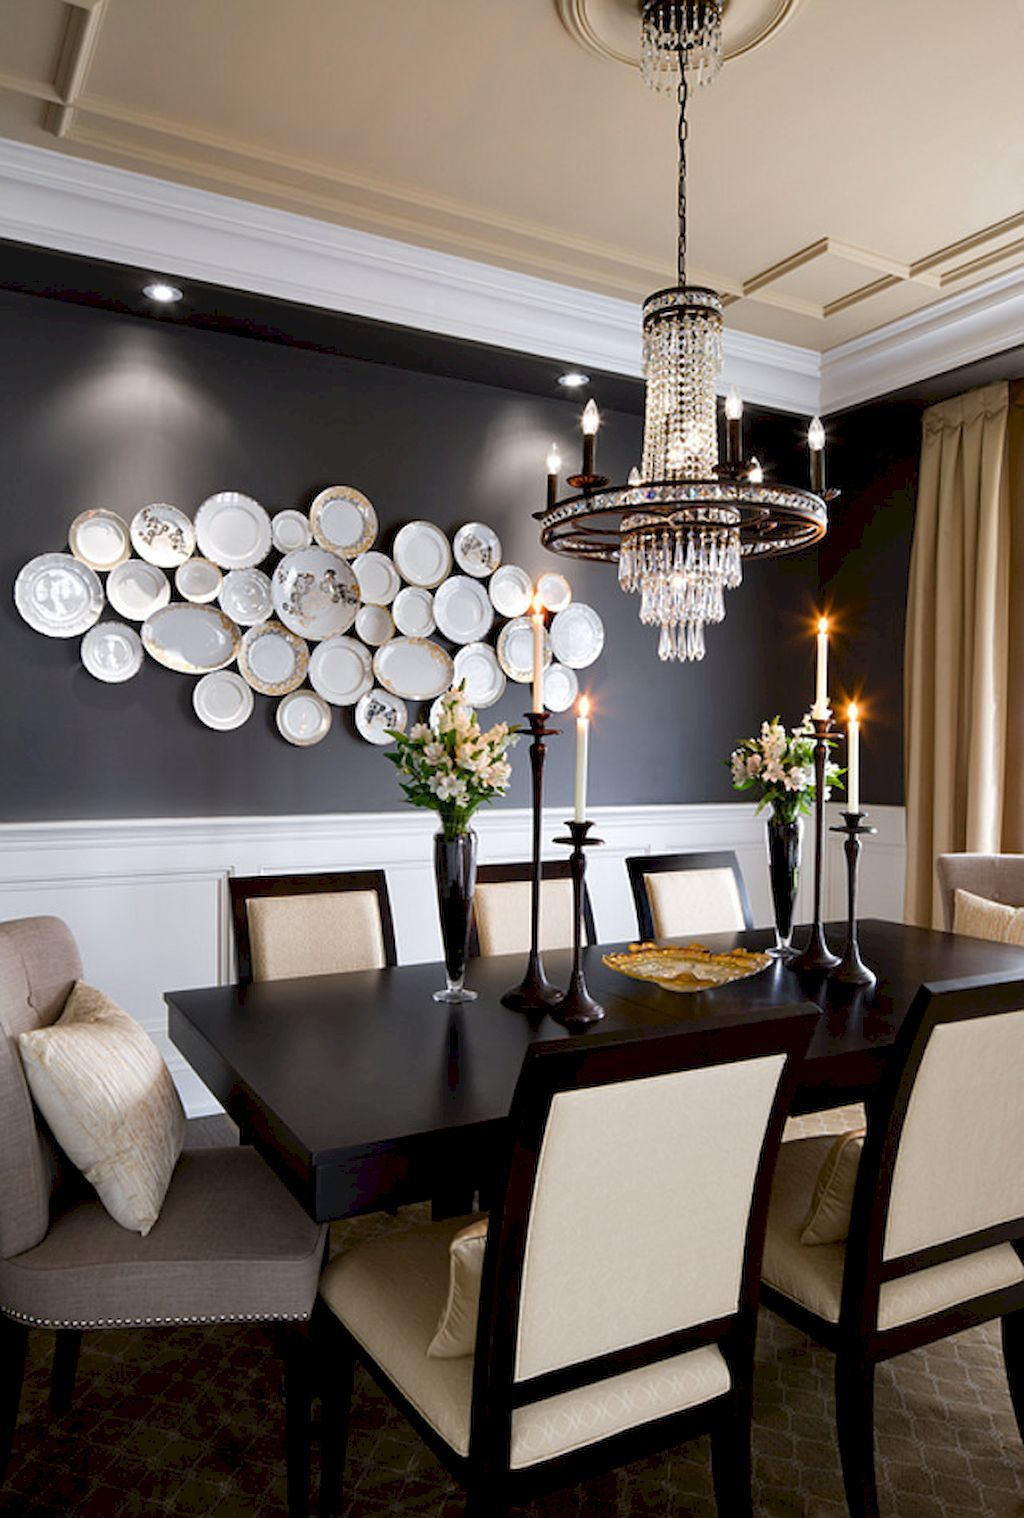 This dining room look awesome (15 | lindos comedores | Comedores ...